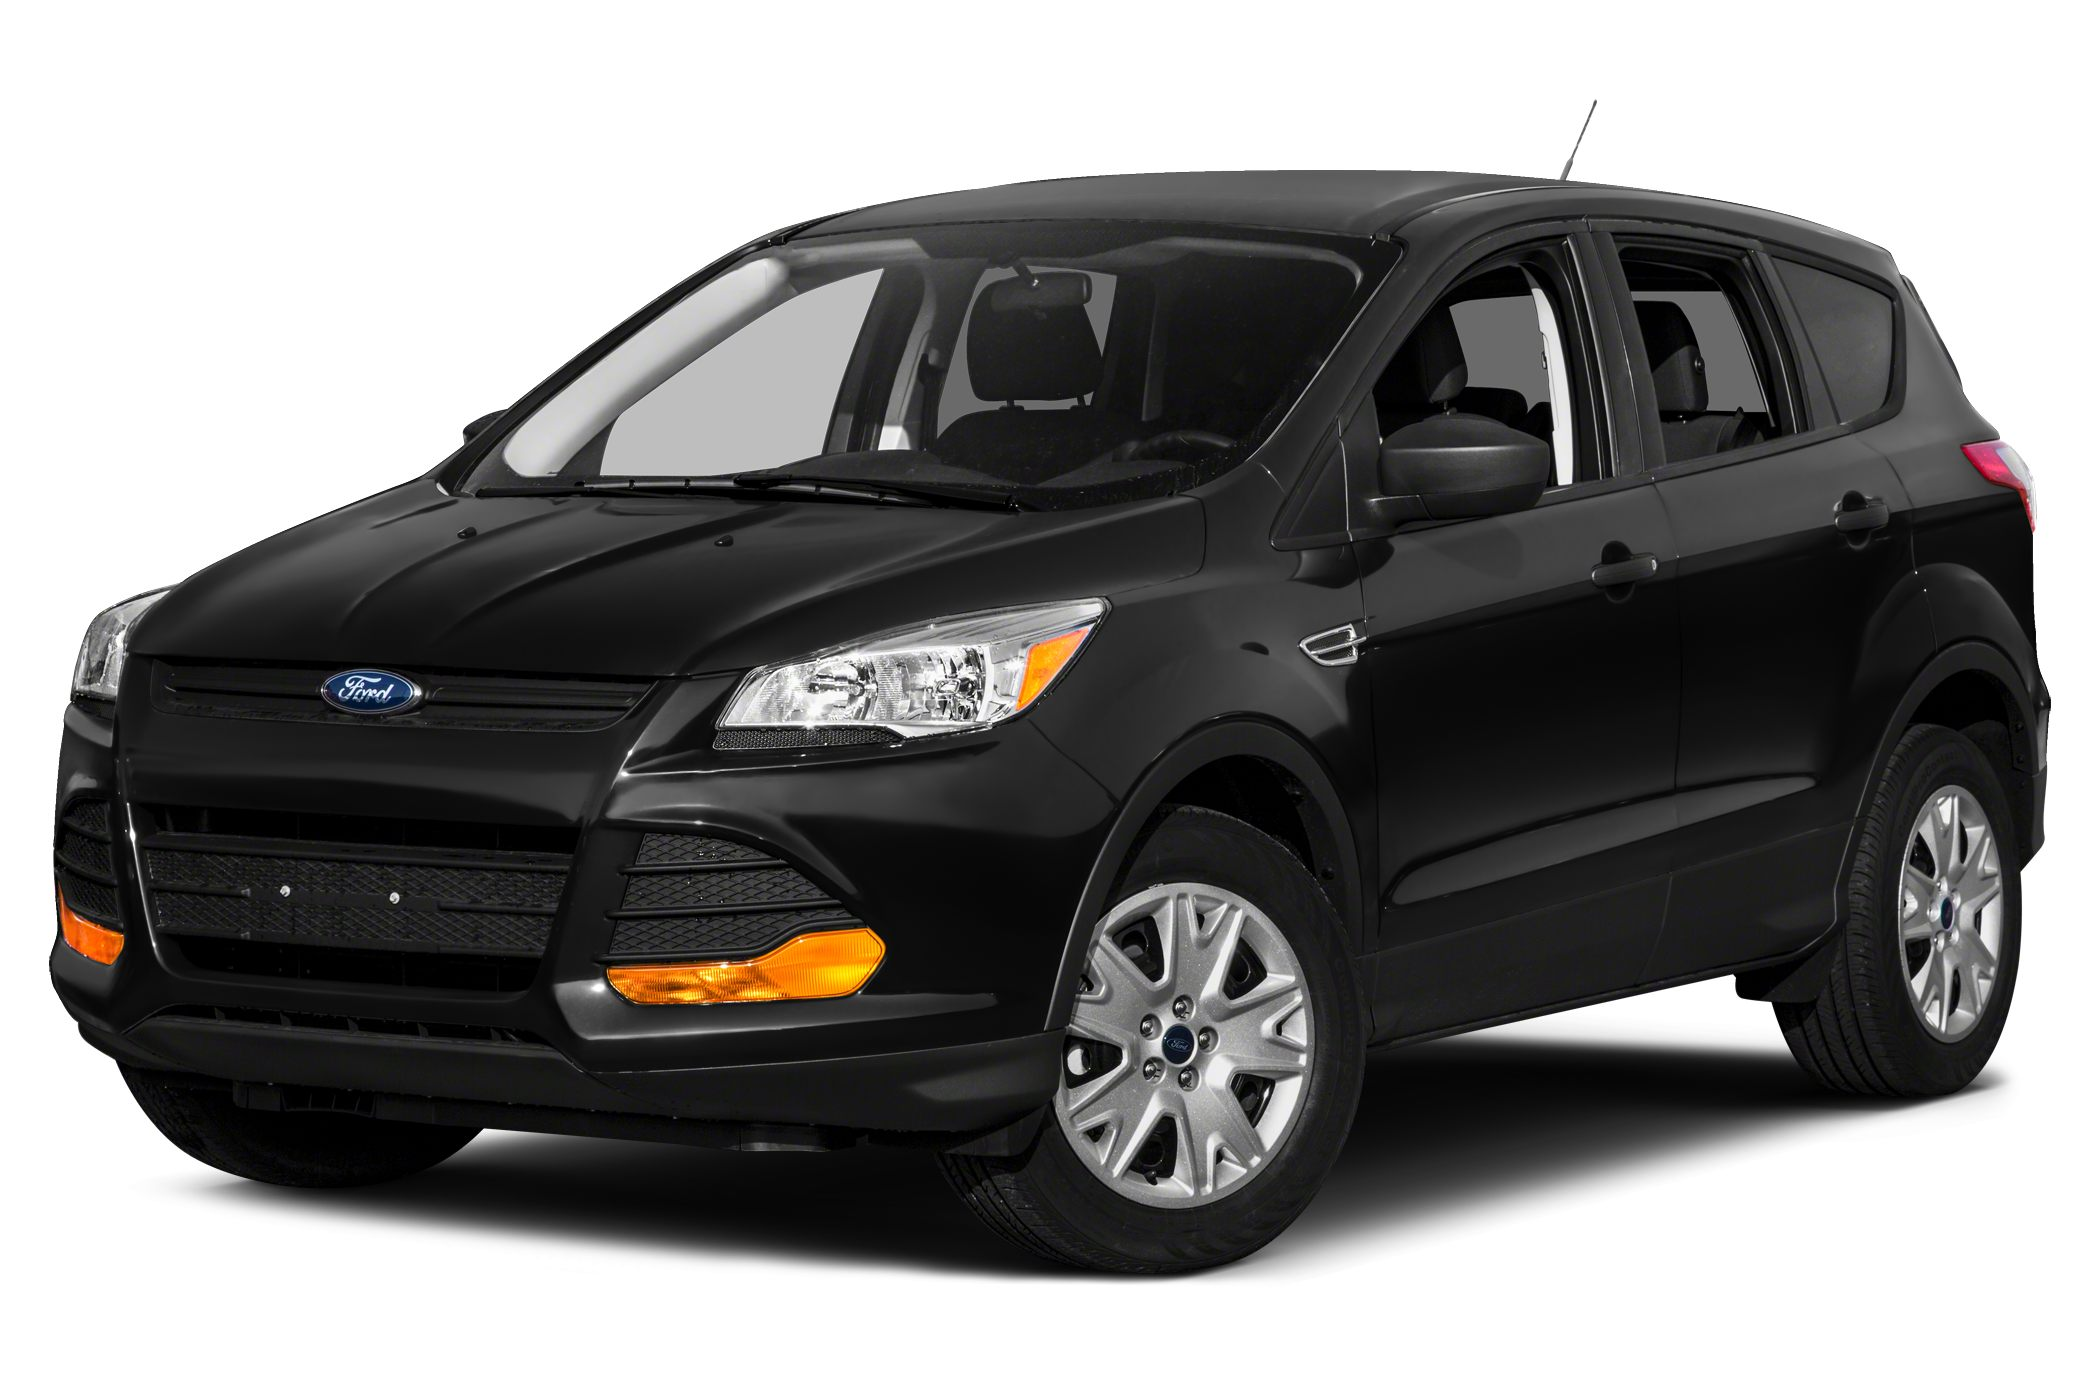 2013 Ford Escape SEL EPA 28 MPG Hwy21 MPG City CARFAX 1-Owner SEL trim Heated Leather Seats Sa